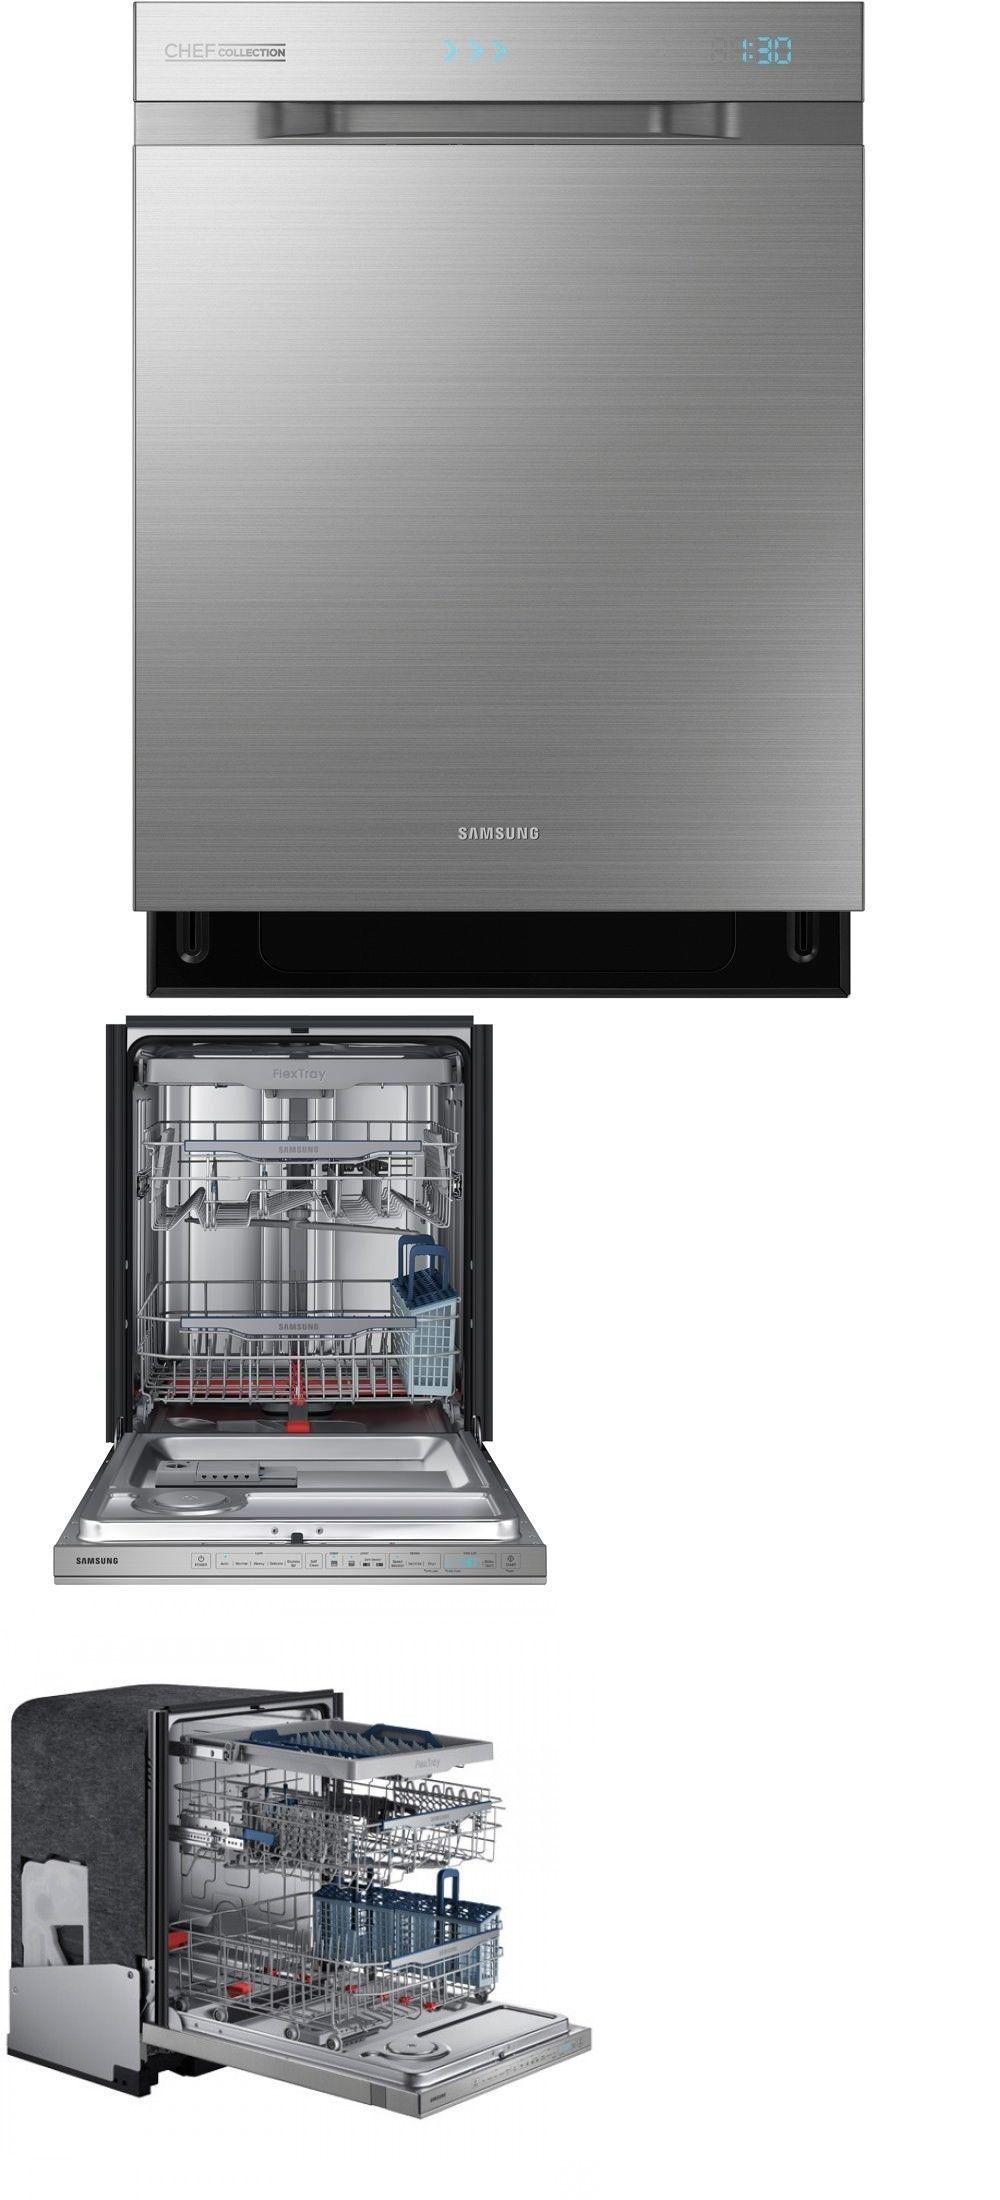 Samsung Top Of The Line Dishwasher Dw80h9970us Black Dishwasher Dishwasher White Dishwasher